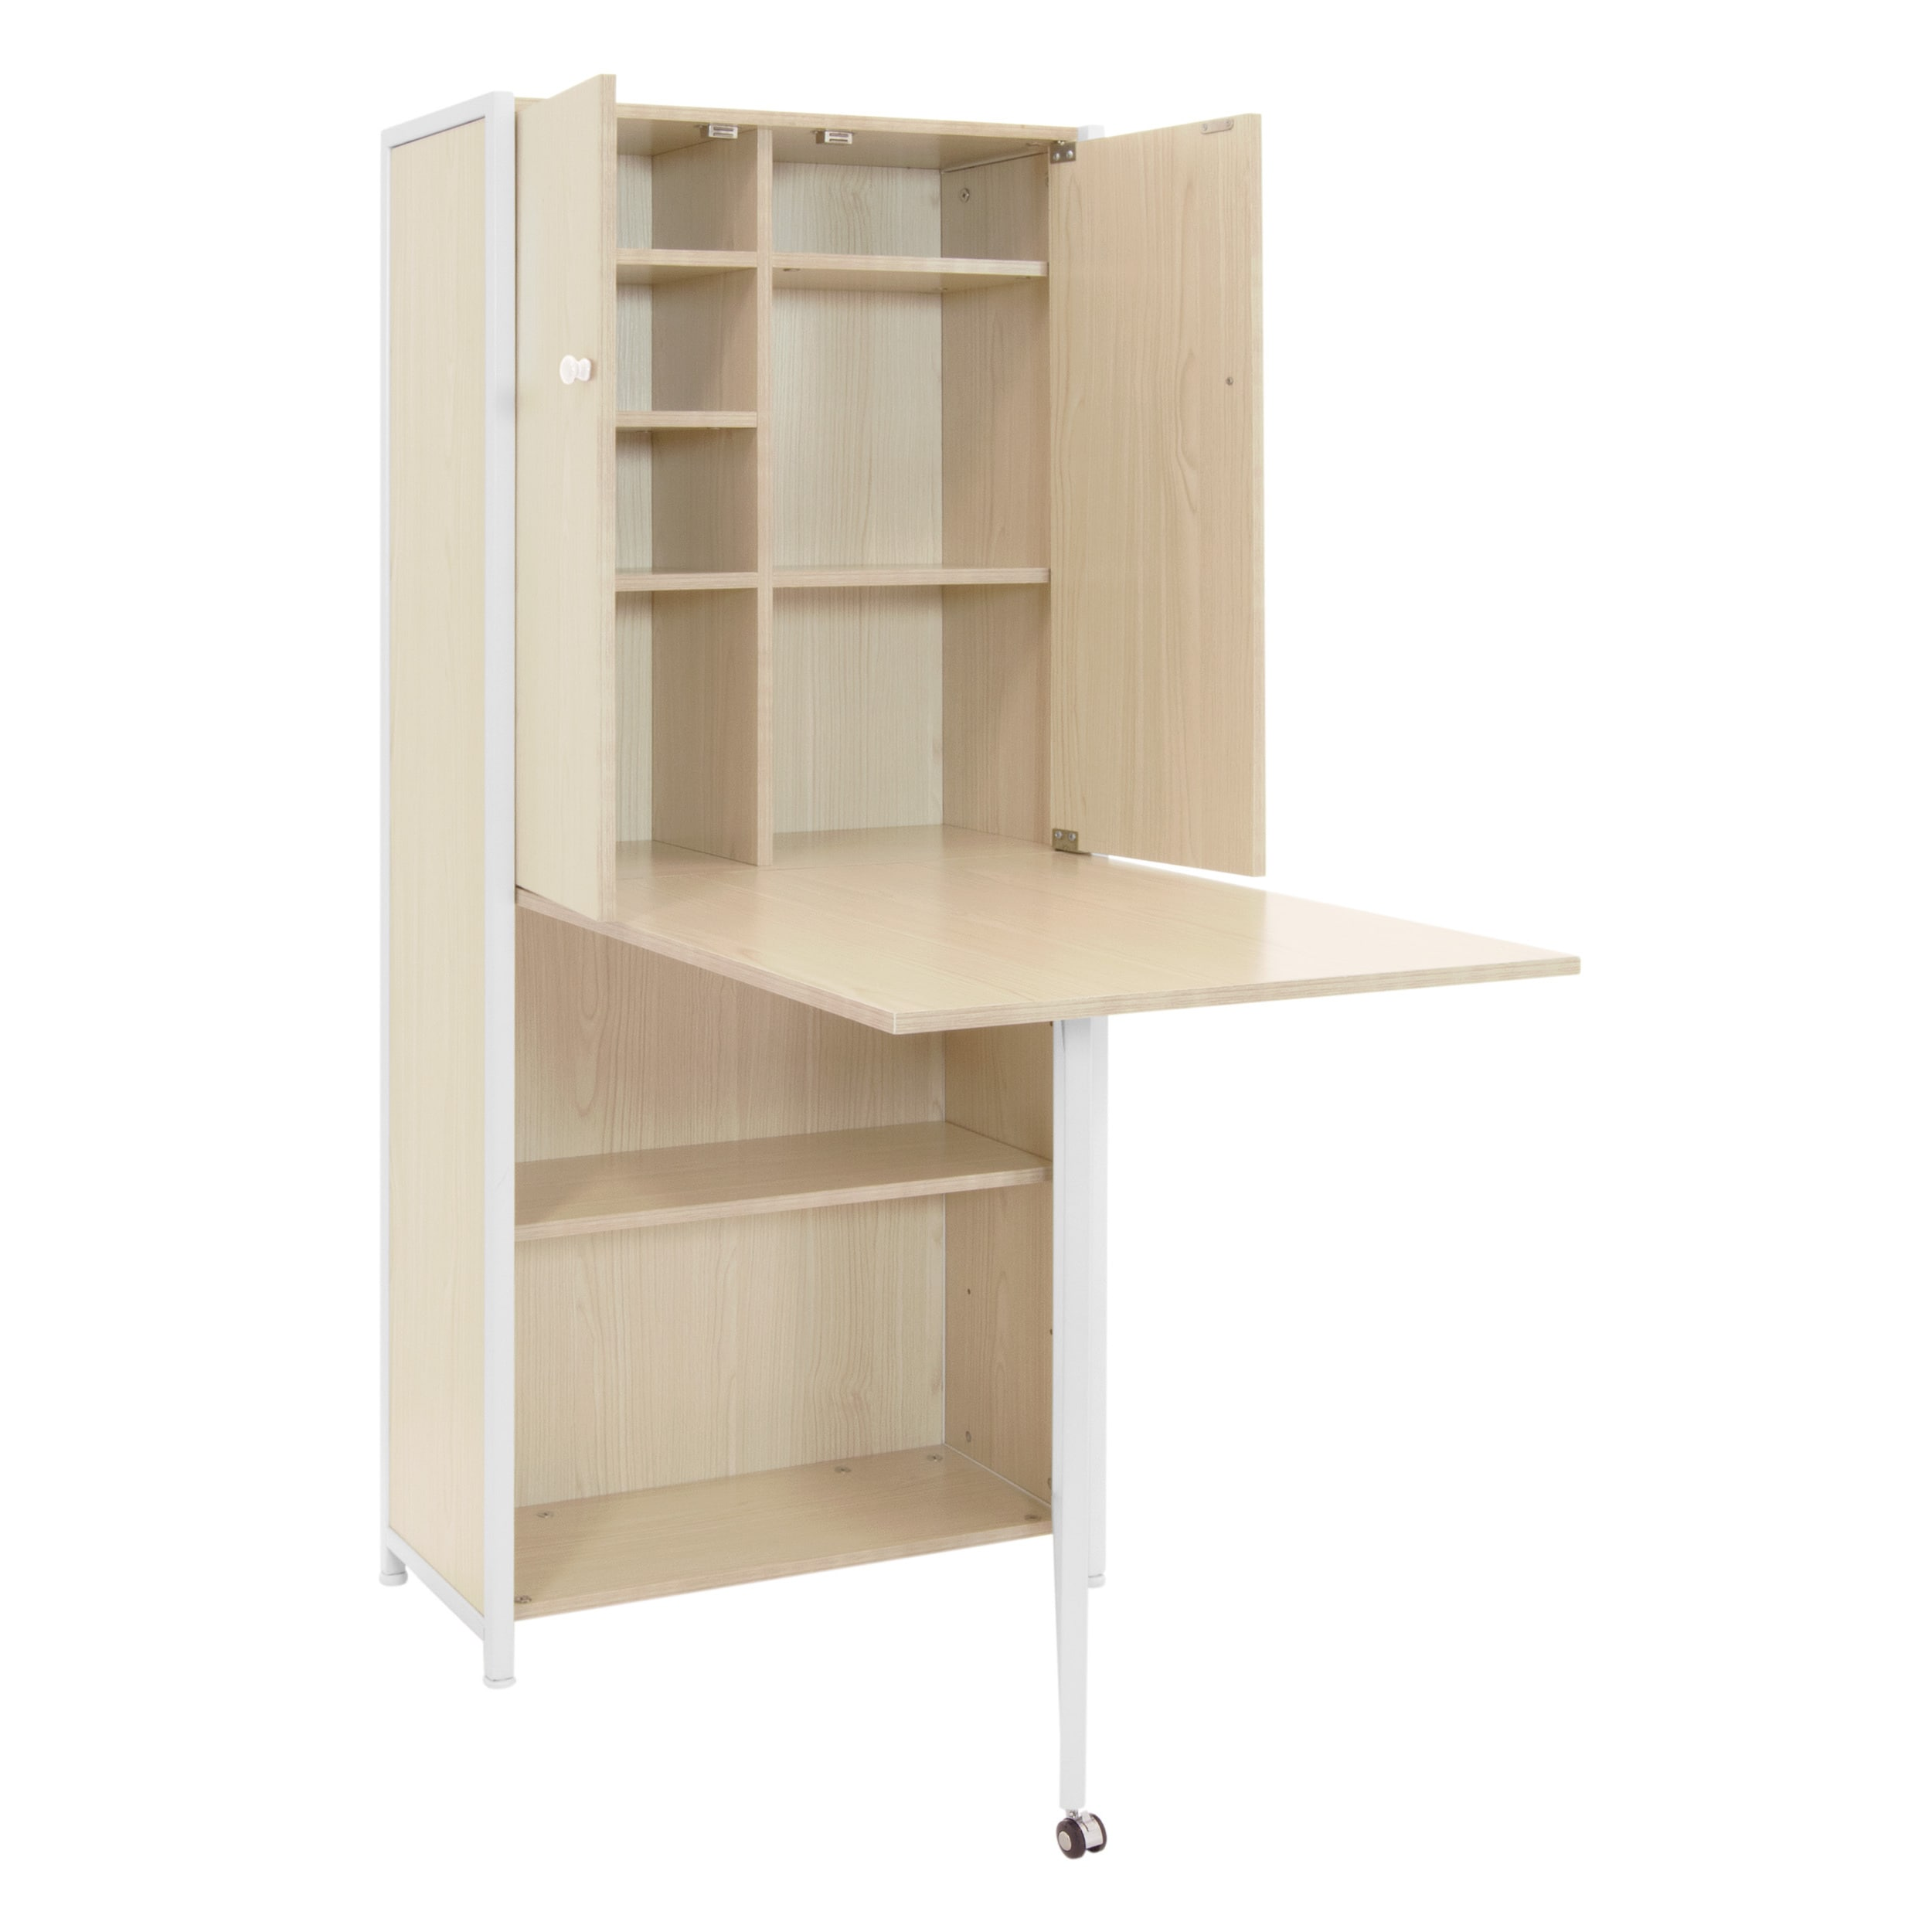 Studio Designs Fold Out Craft And Sewing Machine Table Furniture Armoire    Free Shipping Today   Overstock.com   20982167